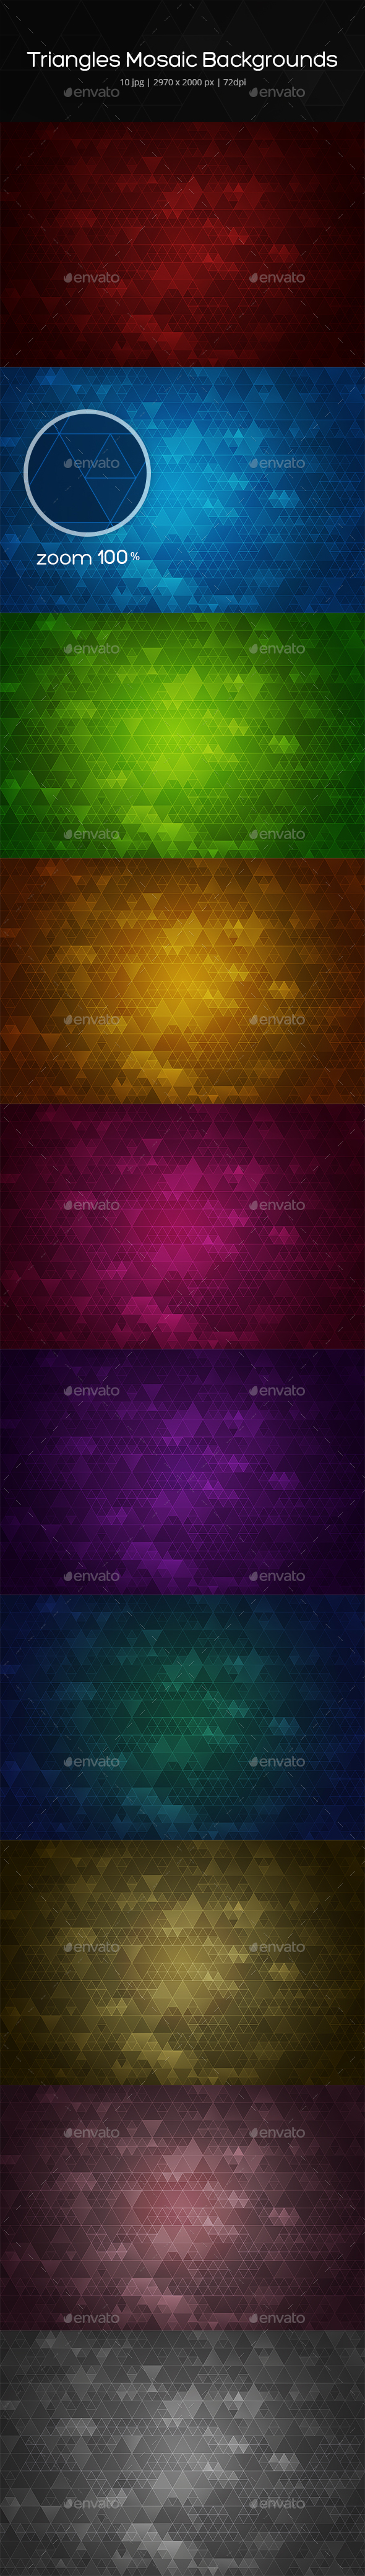 Triangles Mosaic Backgrounds - Backgrounds Graphics